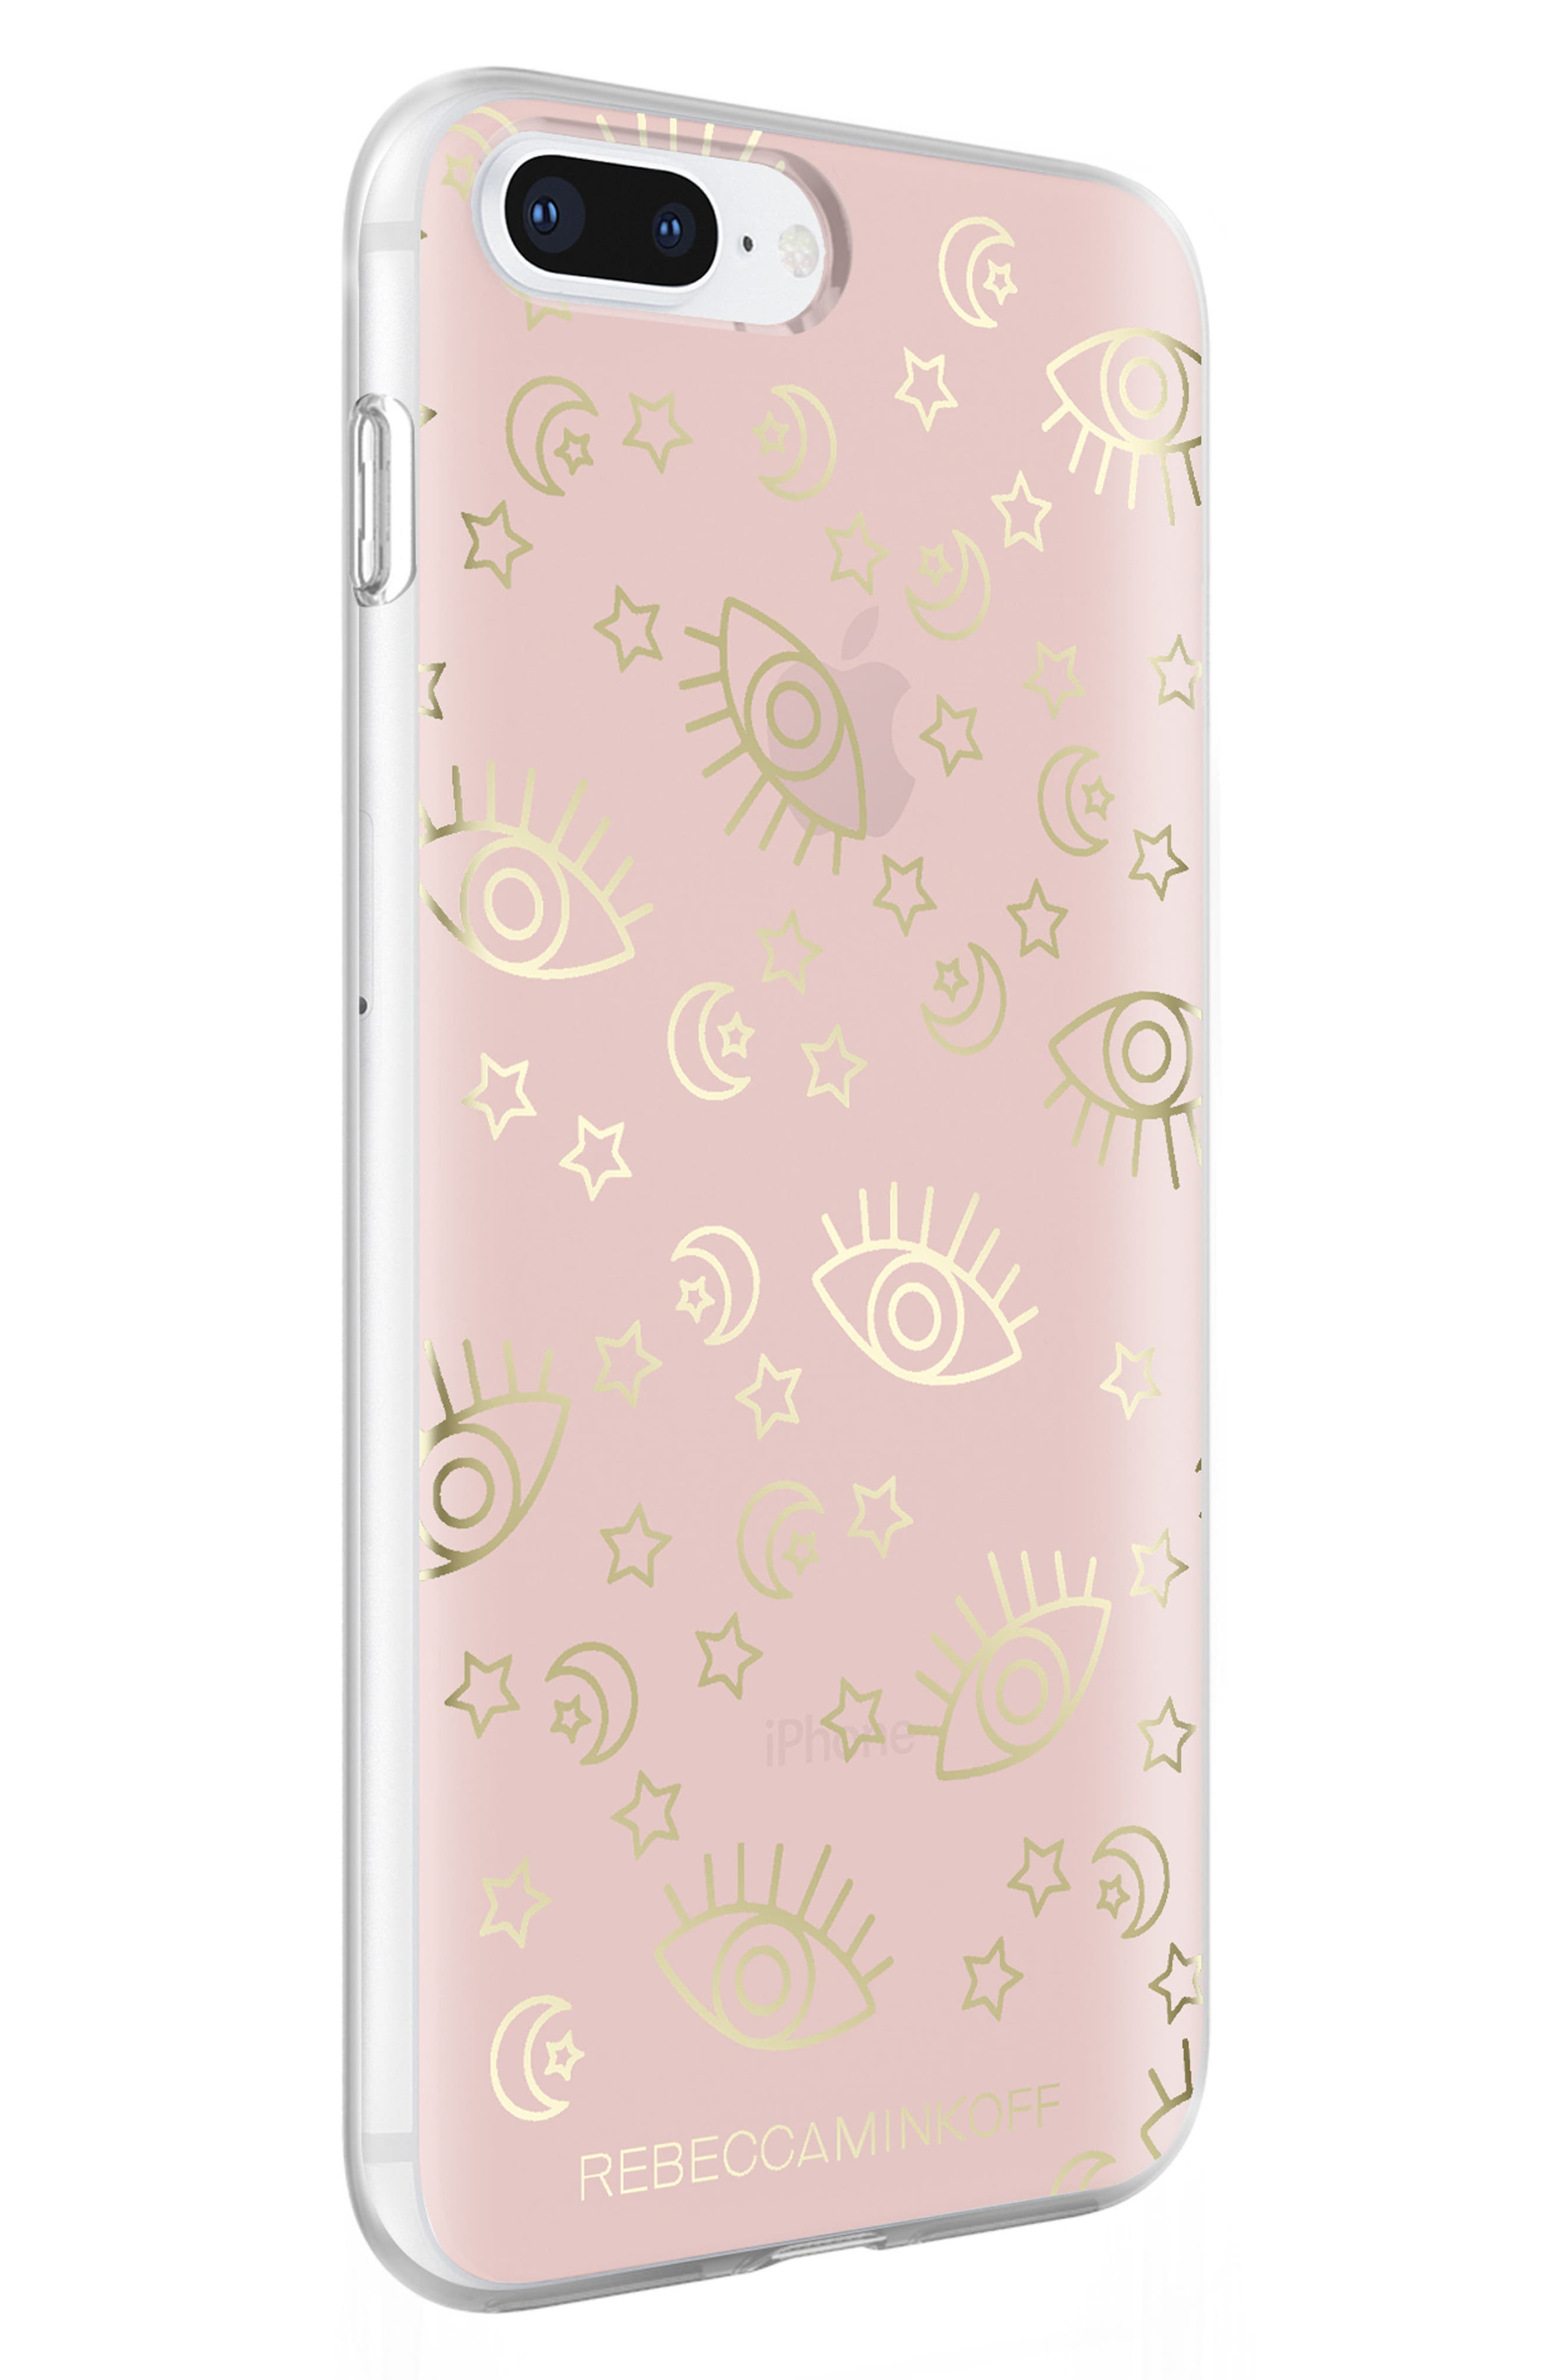 Metallic Galaxy Icon iPhone 7/8 & 7/8 Plus Case,                             Alternate thumbnail 4, color,                             ROSE GOLD/ GOLD FOIL